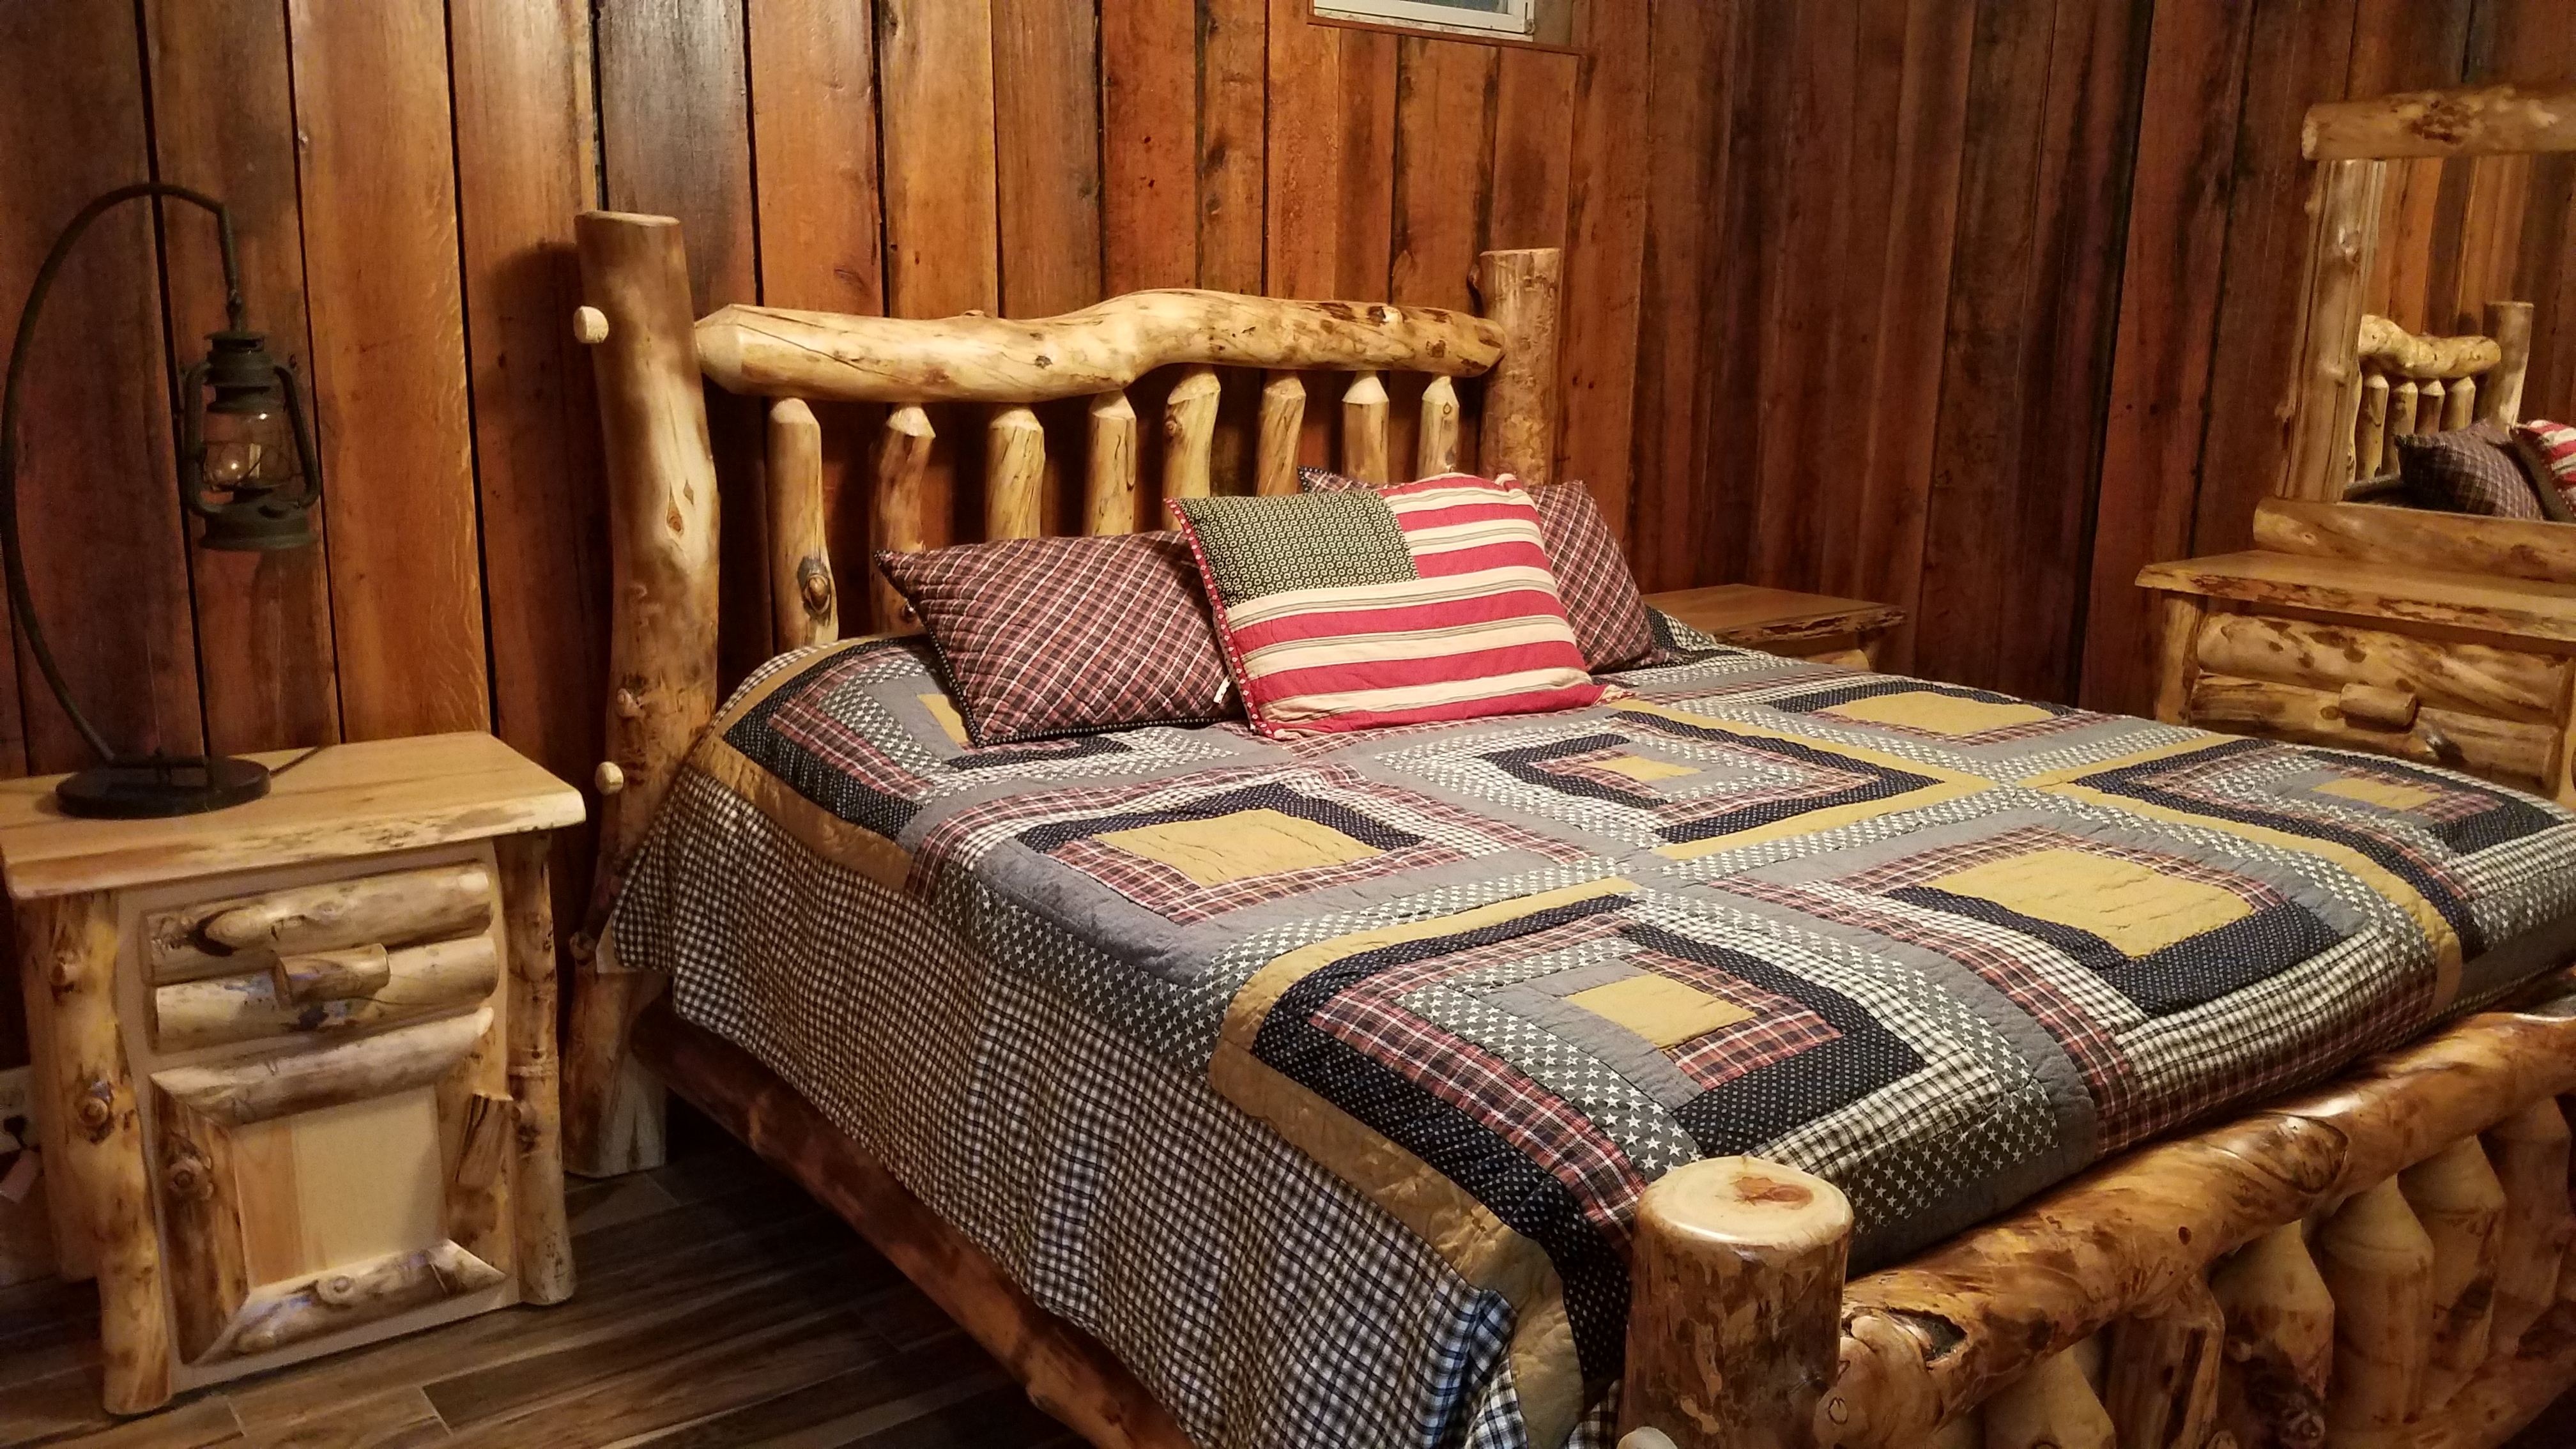 Bedroom - One of three bedrooms that features log framed bed and matching dresser and night stand.